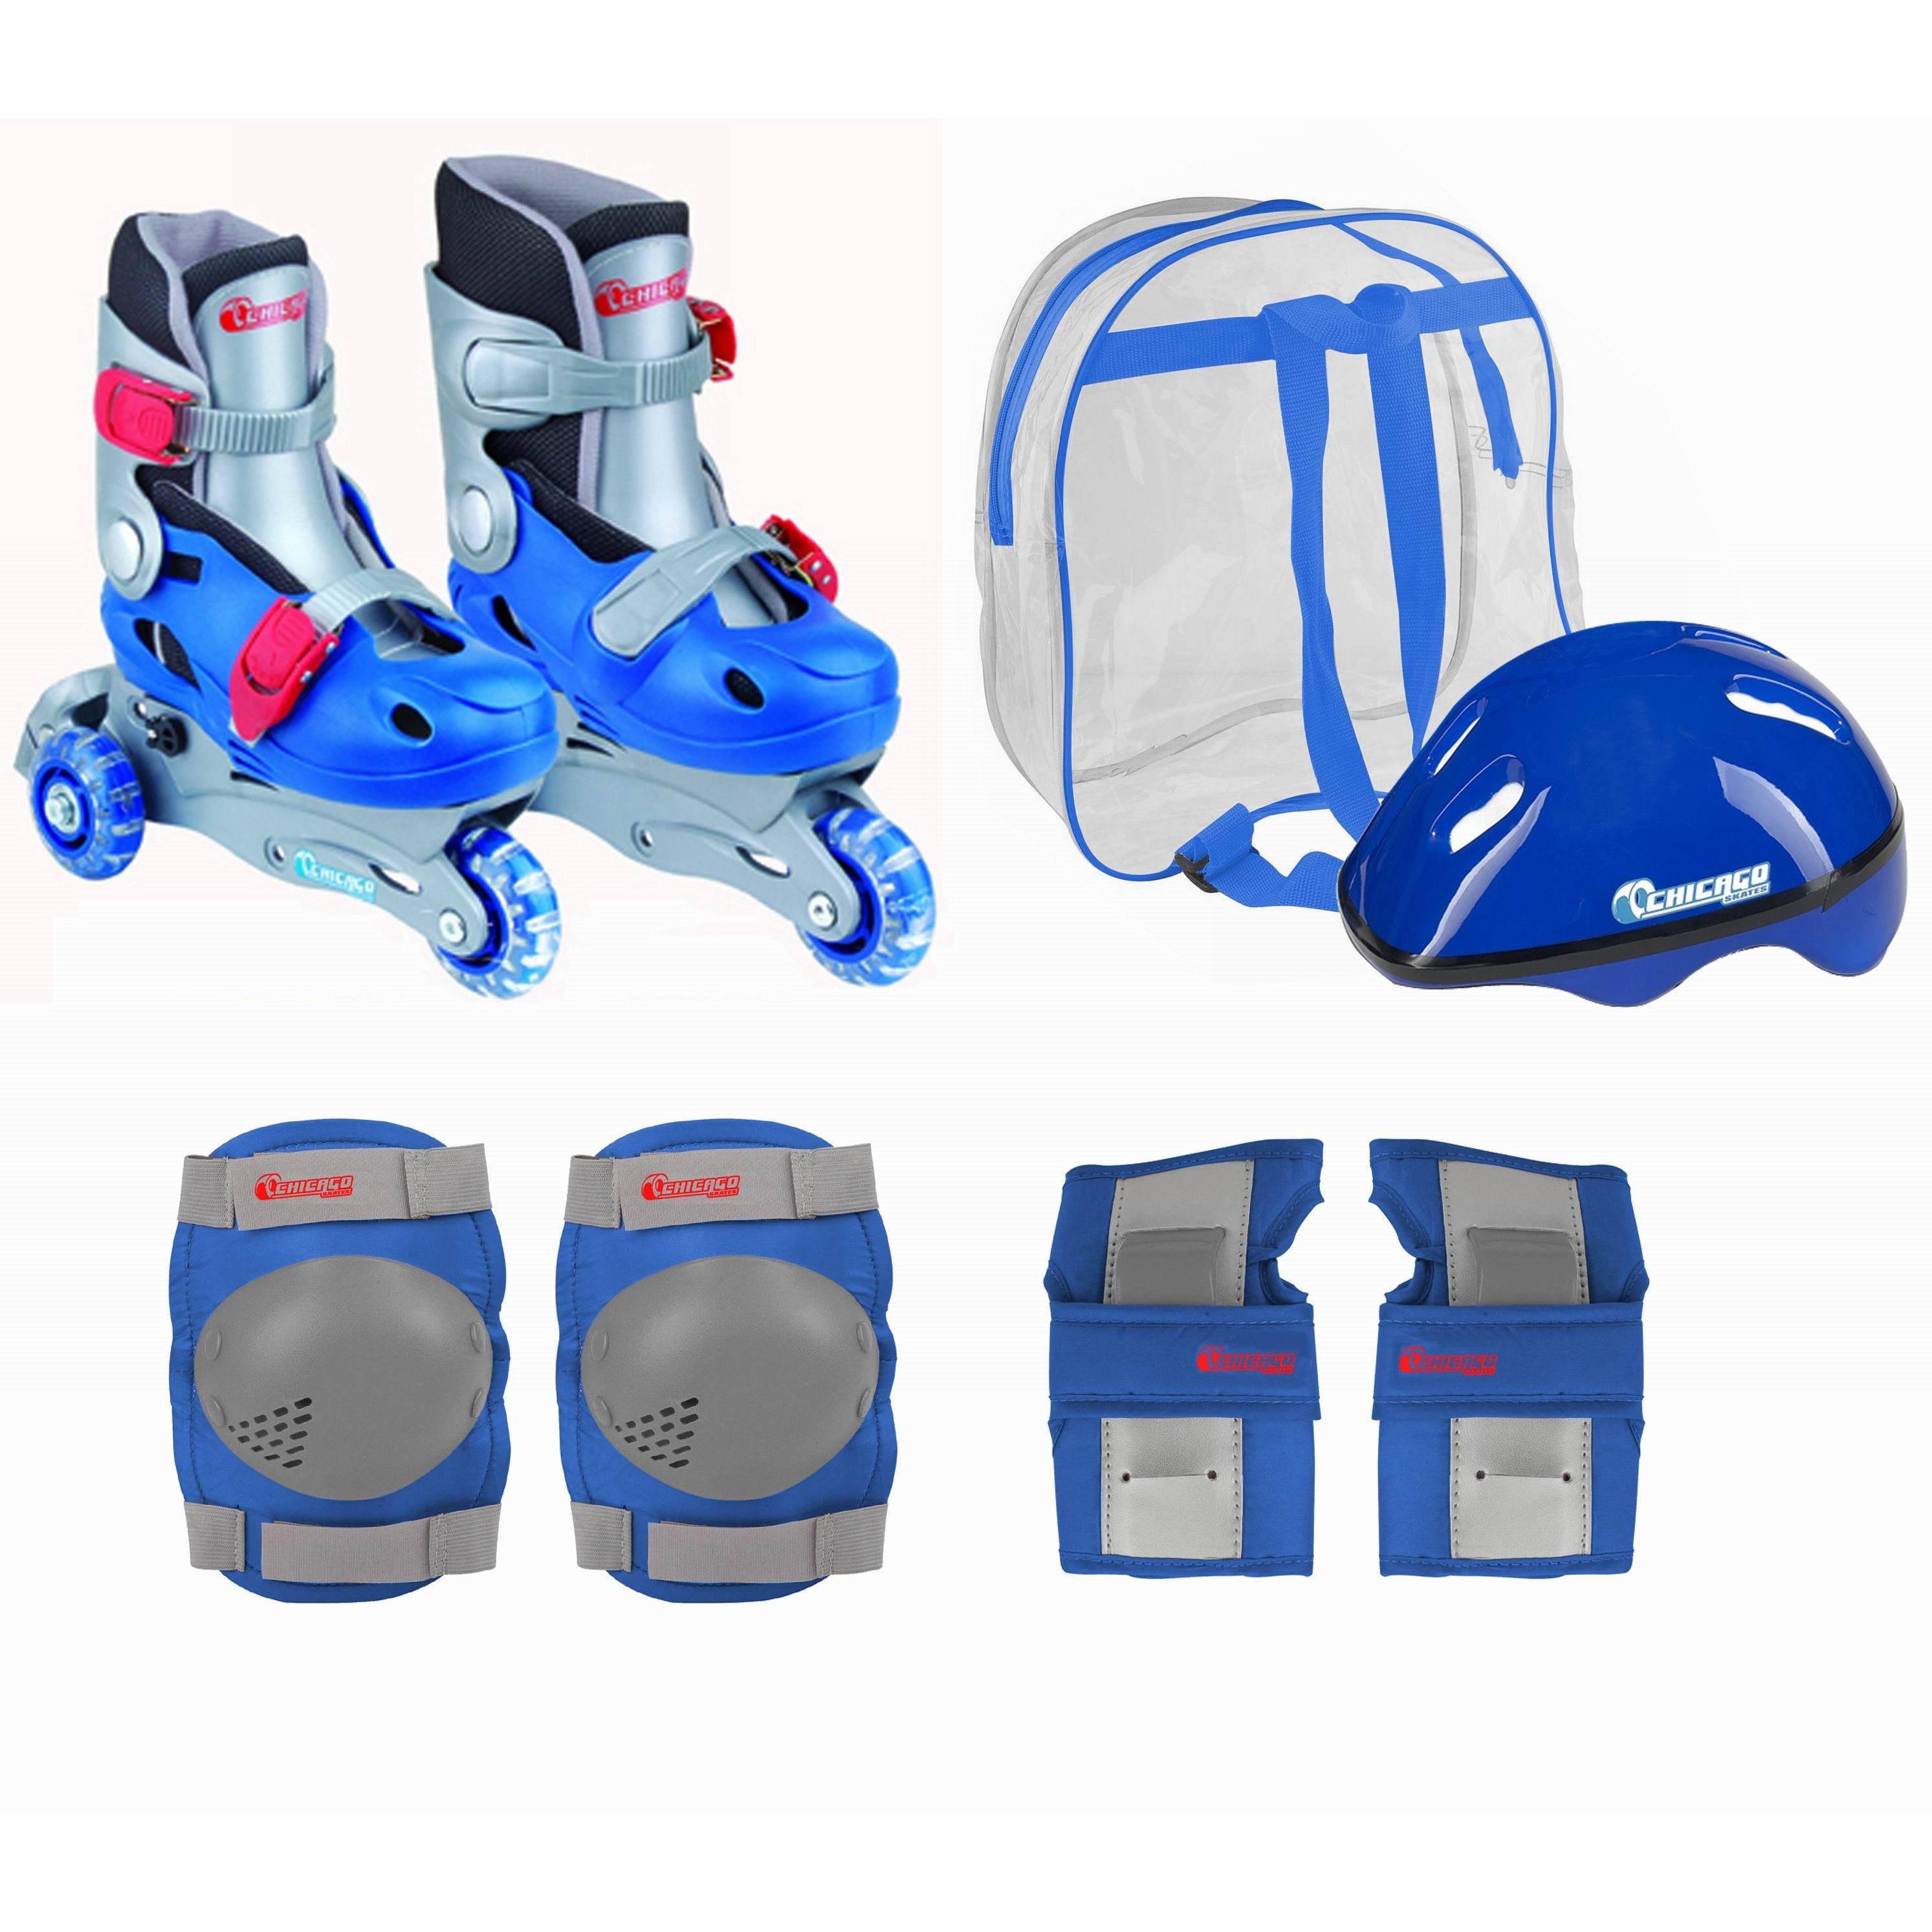 Chicago Skates Boys Training Skate Combo (Blue)